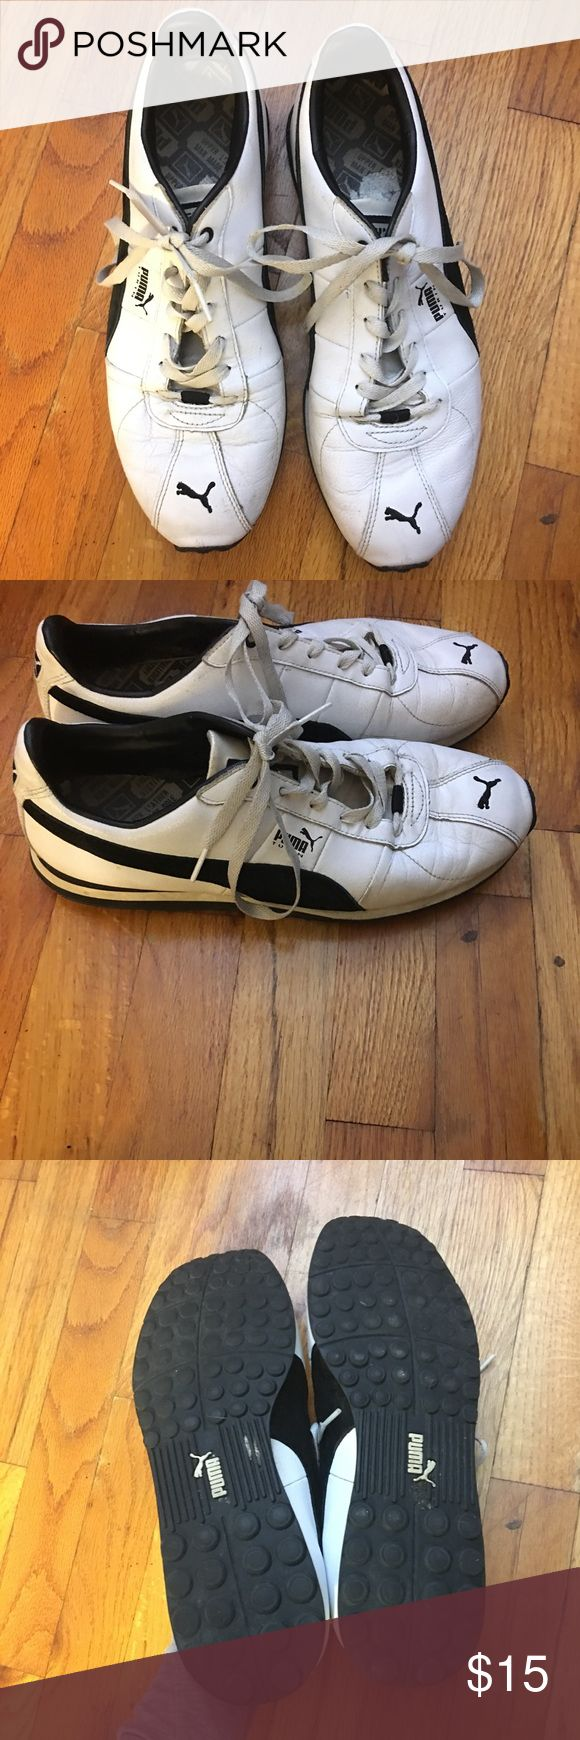 Puma Tennis Shoes White and black puma Tennis Shoes. Size 10. Normal signs of wear but still lots of life left to them! Comes from a smoke free home. Puma Shoes Athletic Shoes